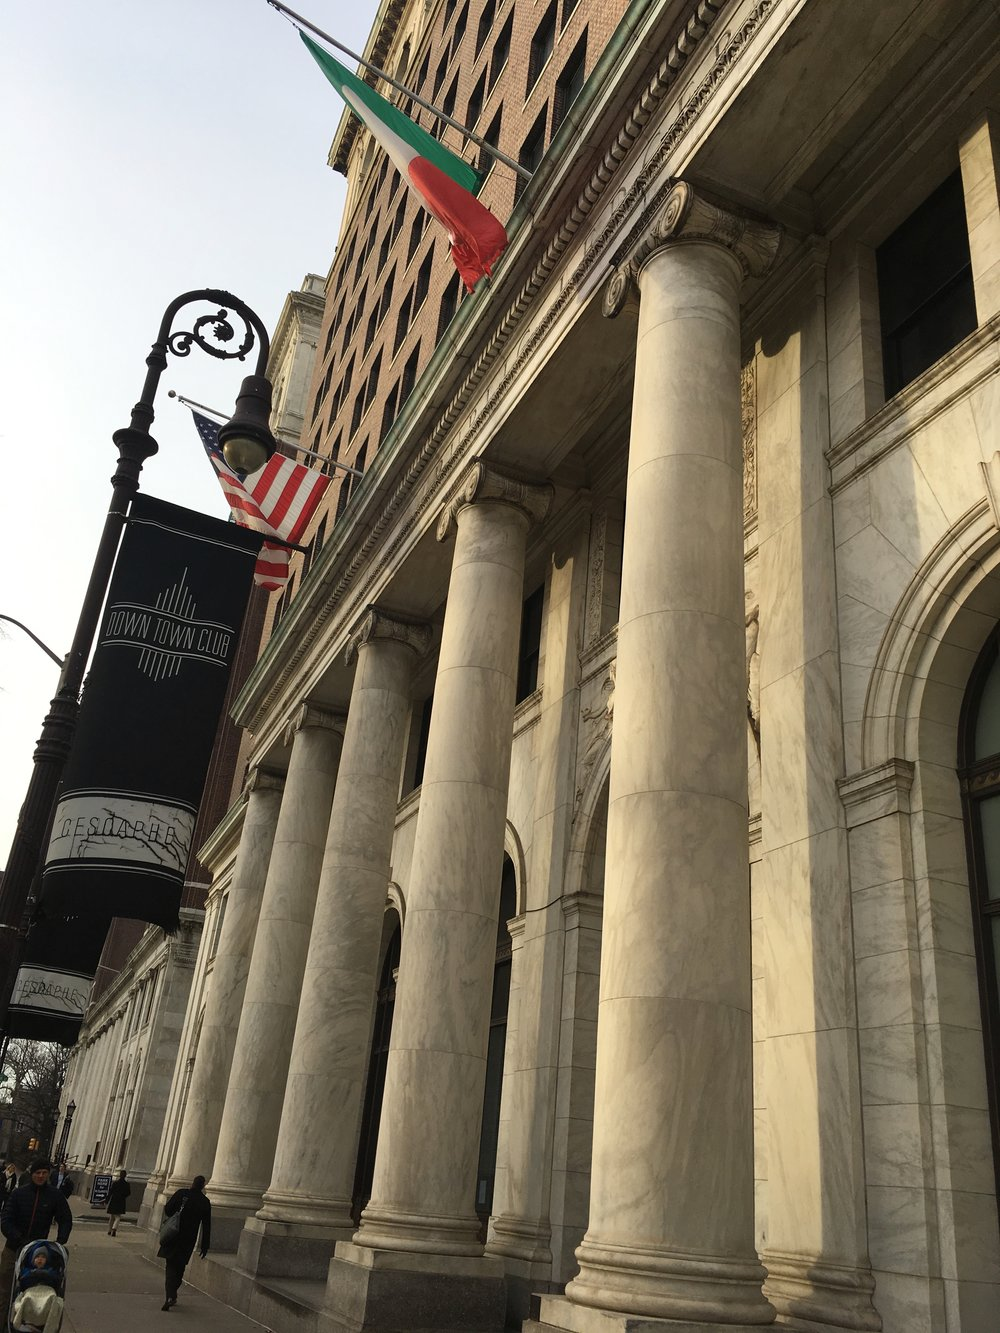 Italian consulate in Philadelphia